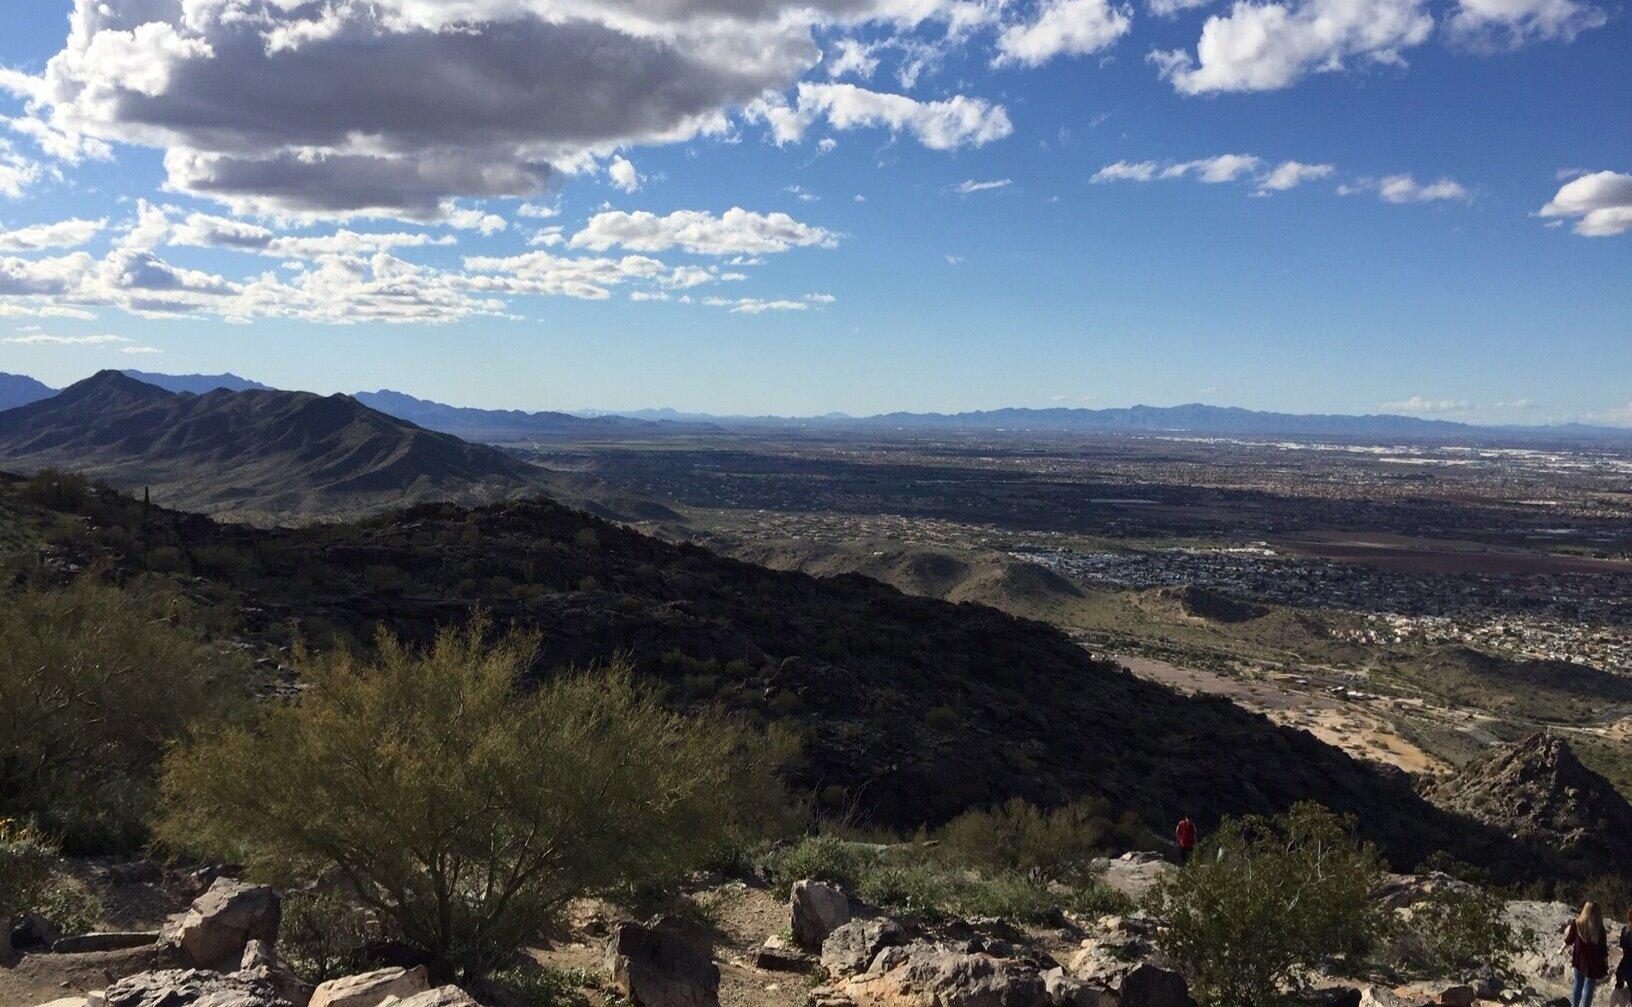 SOUTH MOUNTAIN PARK & PRESERVE  10919 S. Central Ave, Phoenix, AZ 85042 8.8 mi / 14.16 km from property